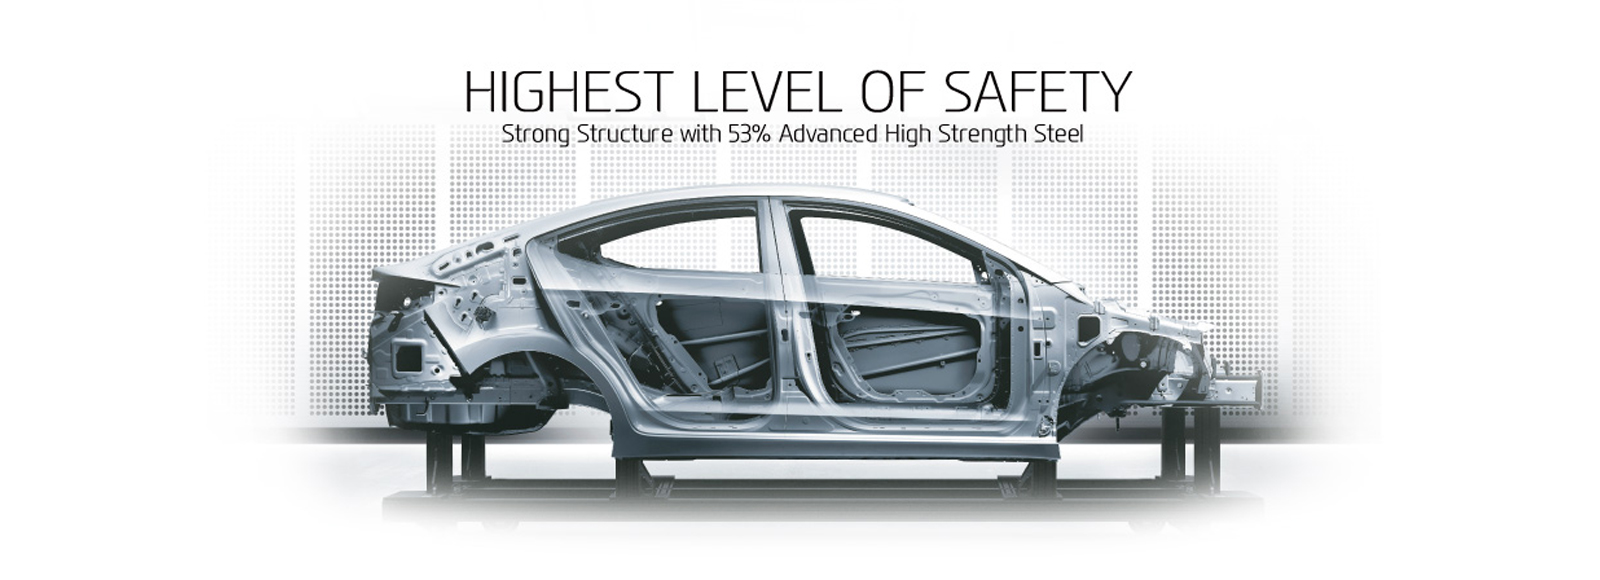 Elantra Car Safety